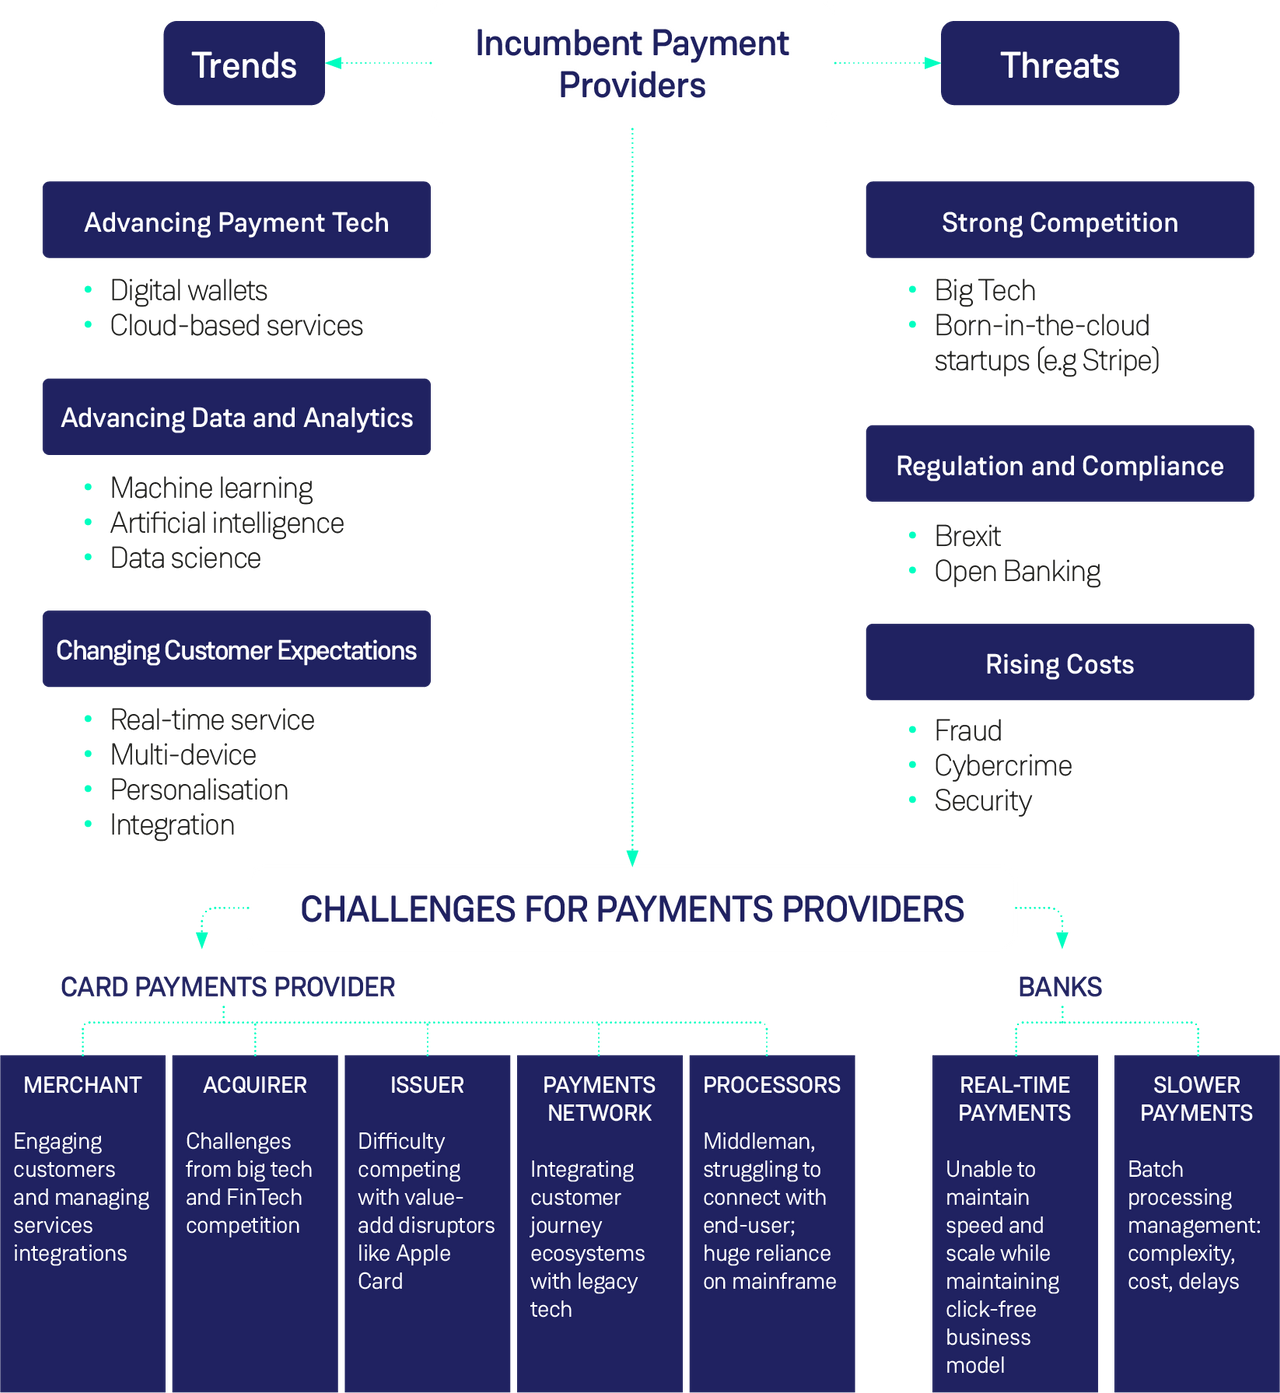 Challenges for Payments Providers